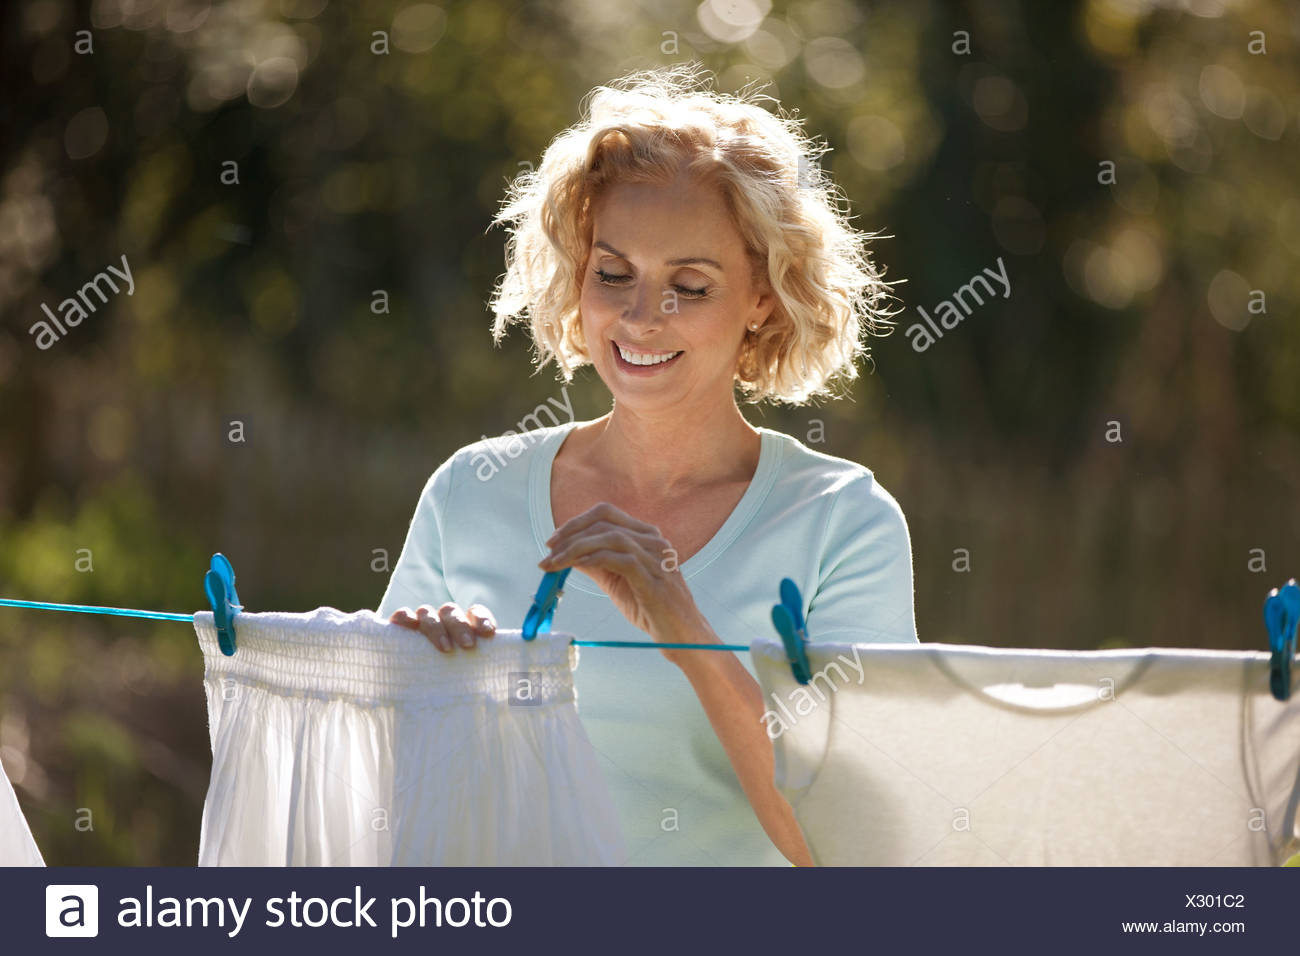 A mature woman pegging out washing on a washing line, smiling - Stock Image